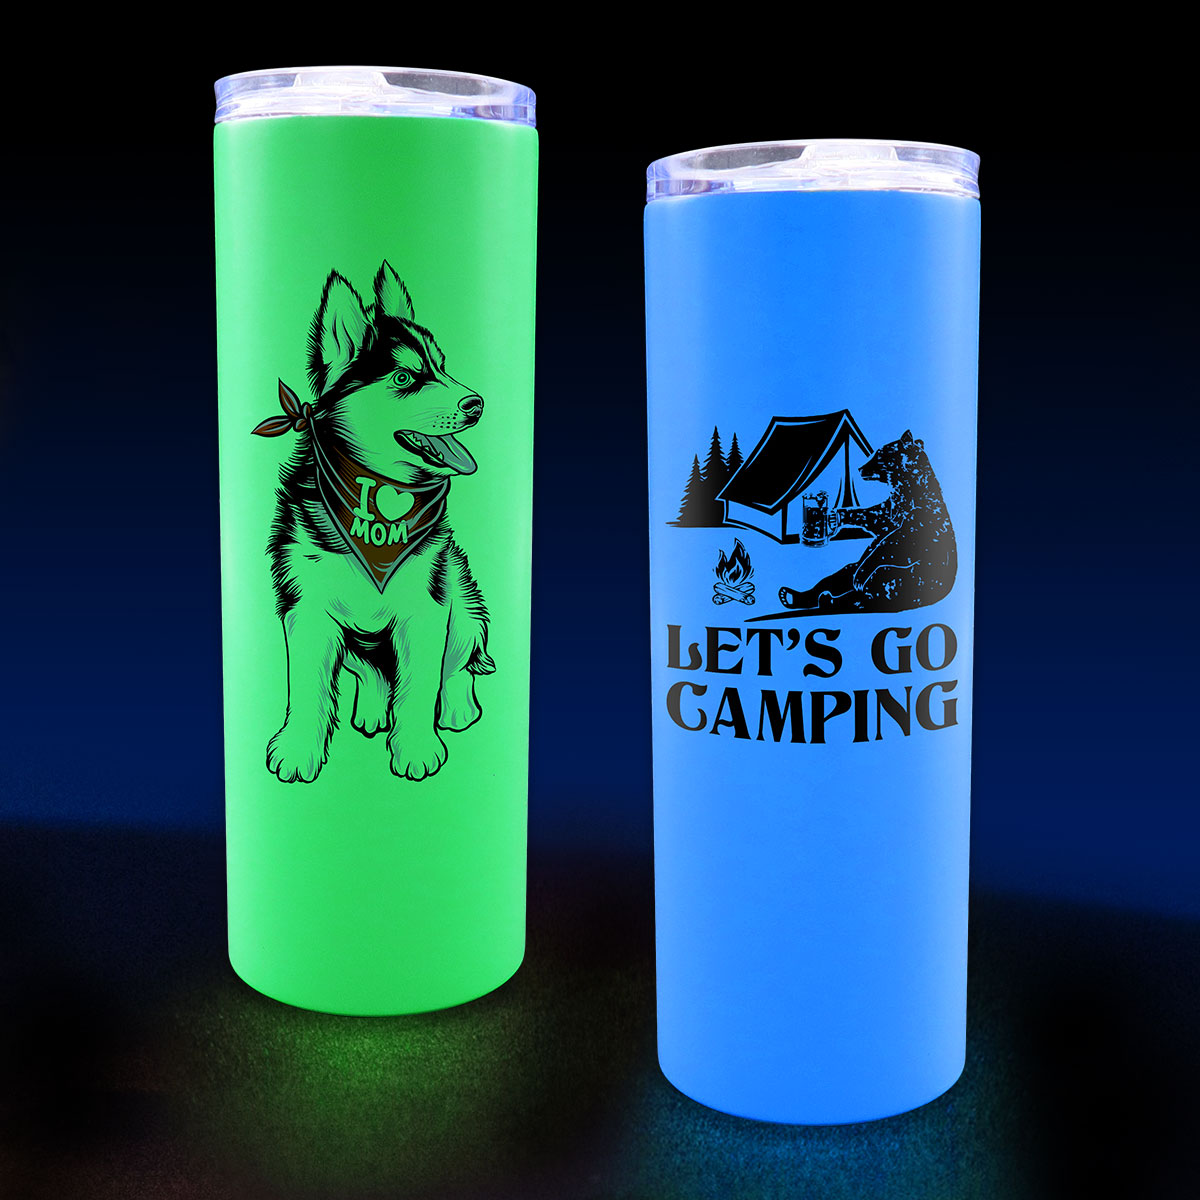 CALCA 25pcs of Set 20oz Sublimation Blanks Straight Skinny Tumbler Glow In The Dark White to Green / Blue with Closed Lid and Straw